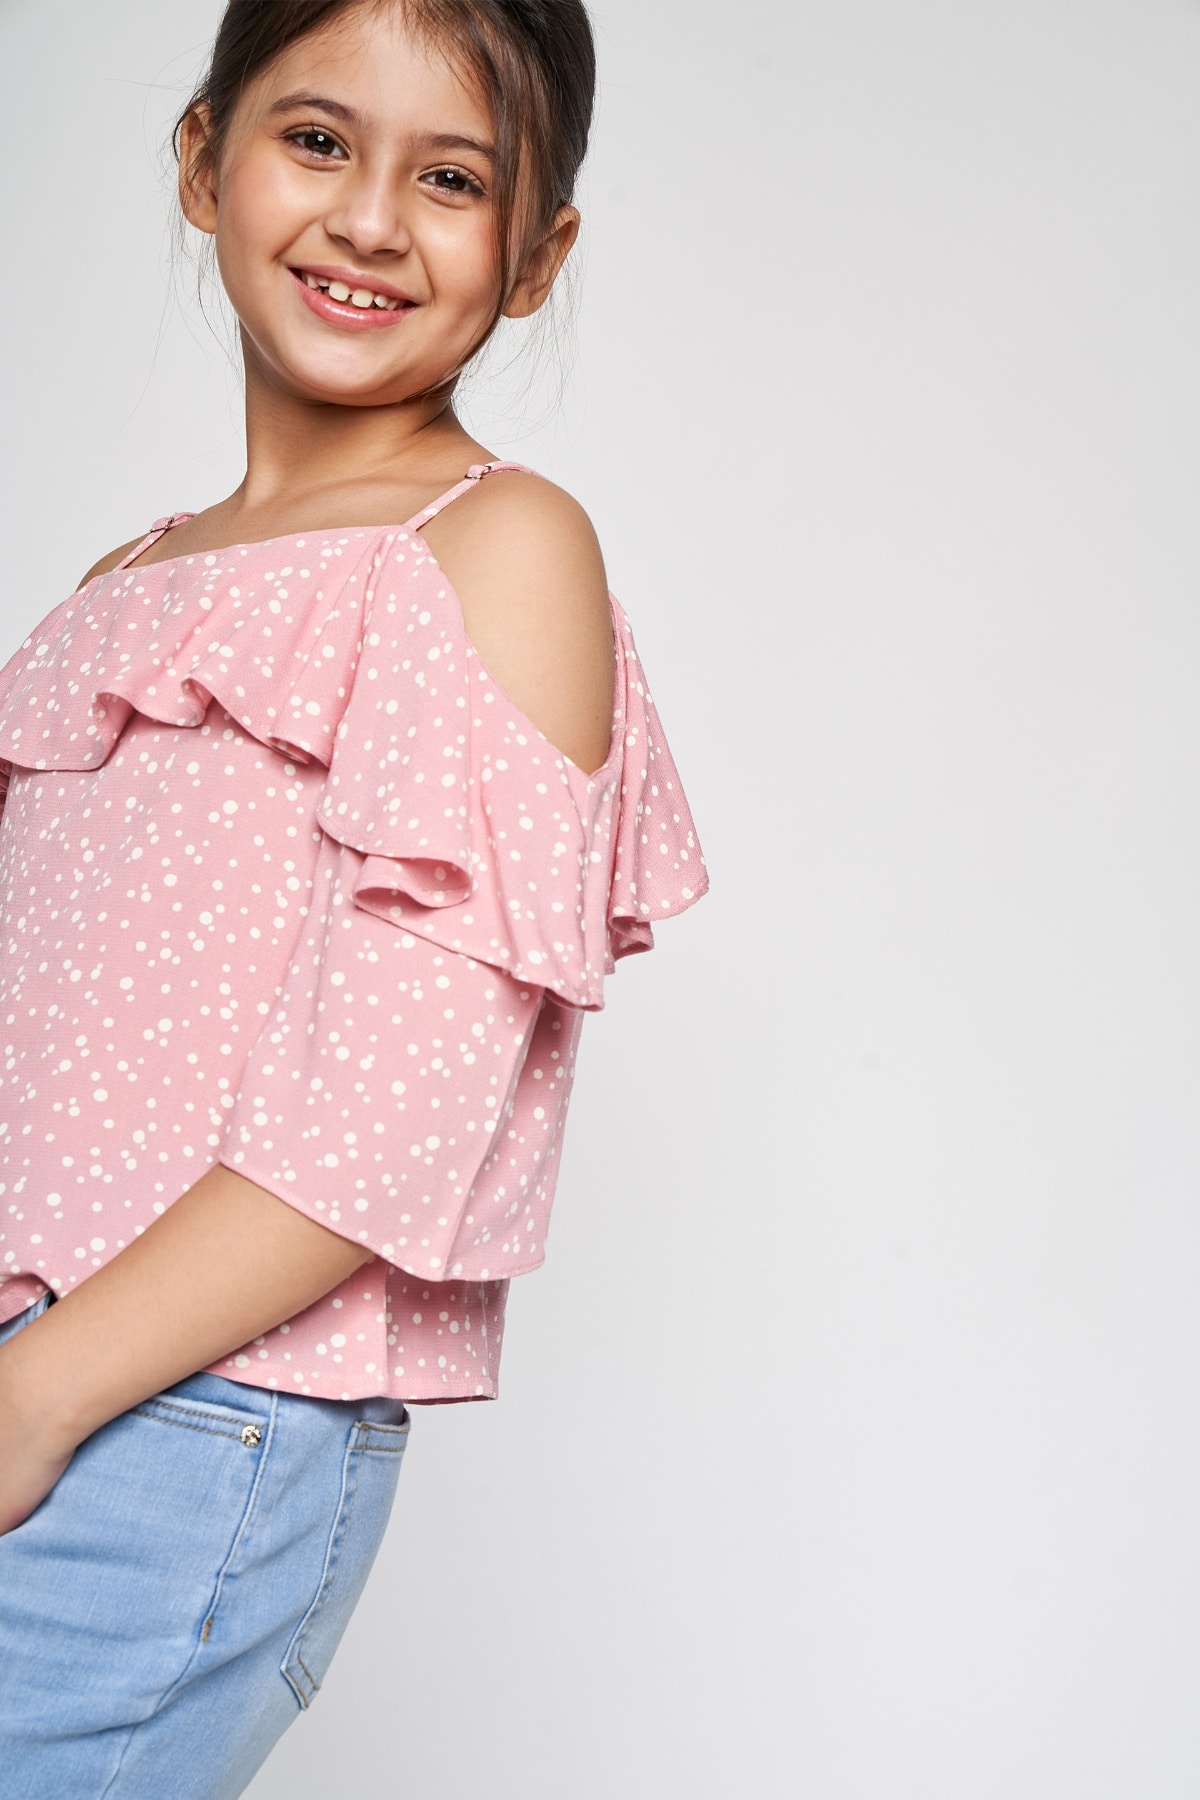 AND | Peach Polka Dots Straight Top